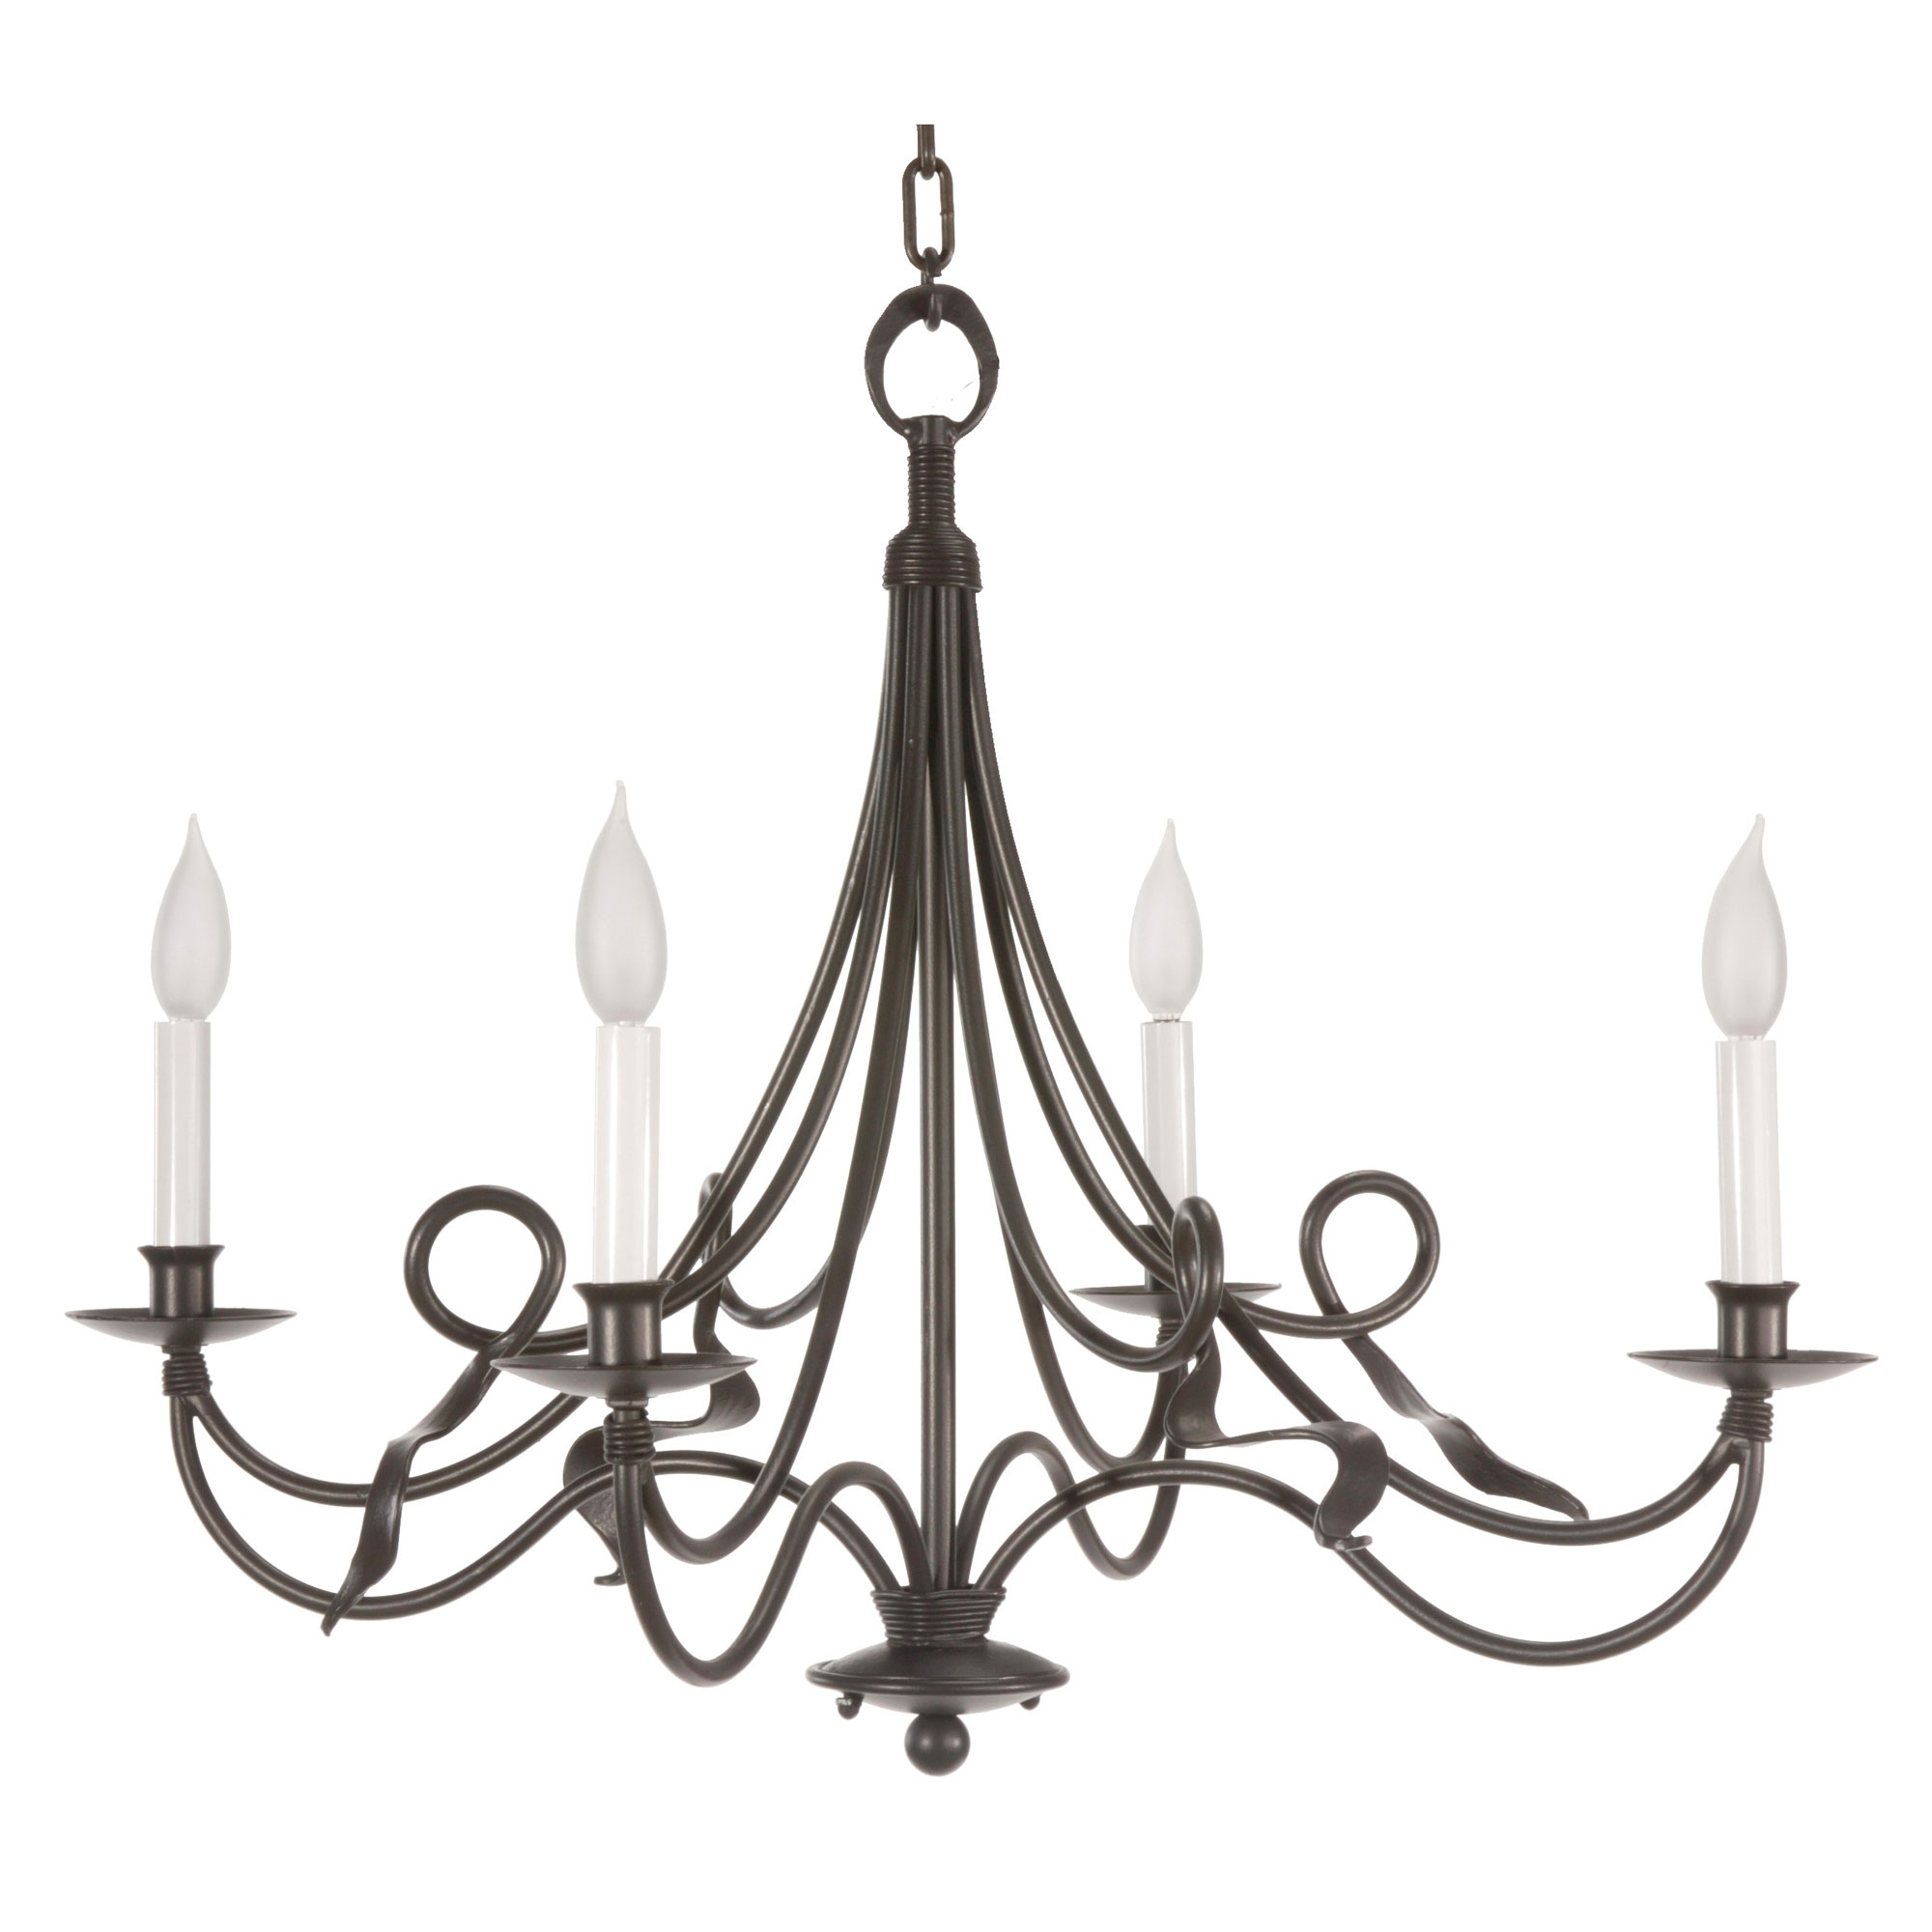 Current Black Color Rustic Cast Iron Chandeliers With Candle Holder For With Regard To Cast Iron Chandelier (View 11 of 20)